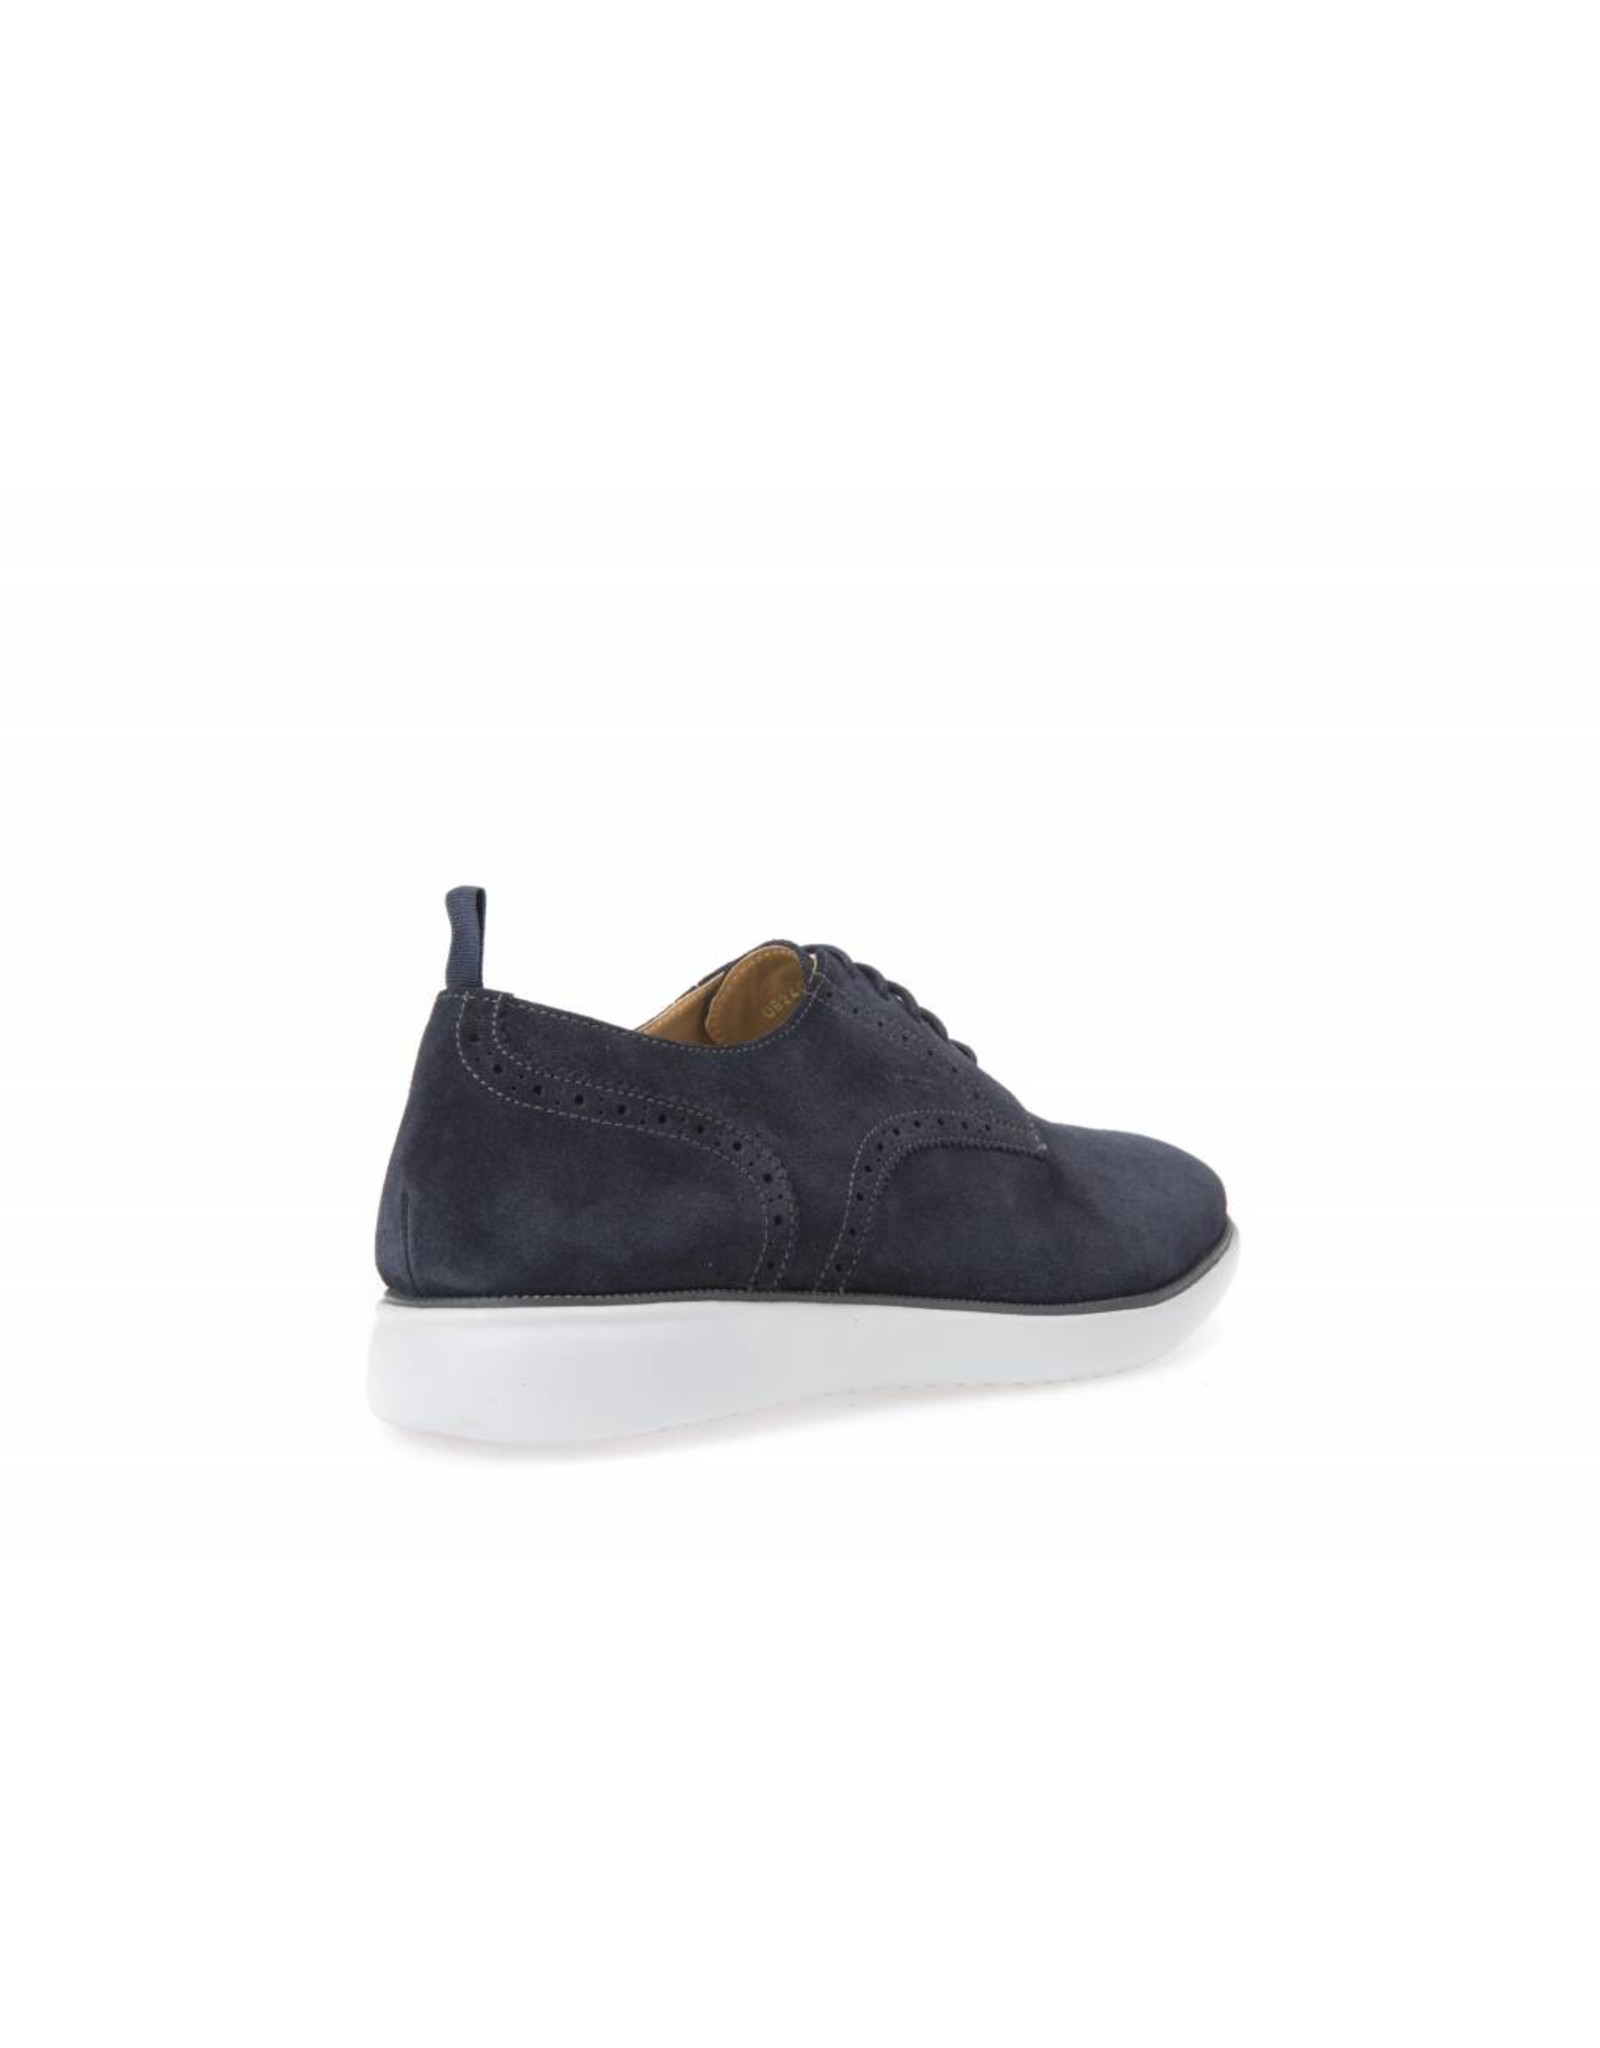 Geox Winfred Lace Up Shoe